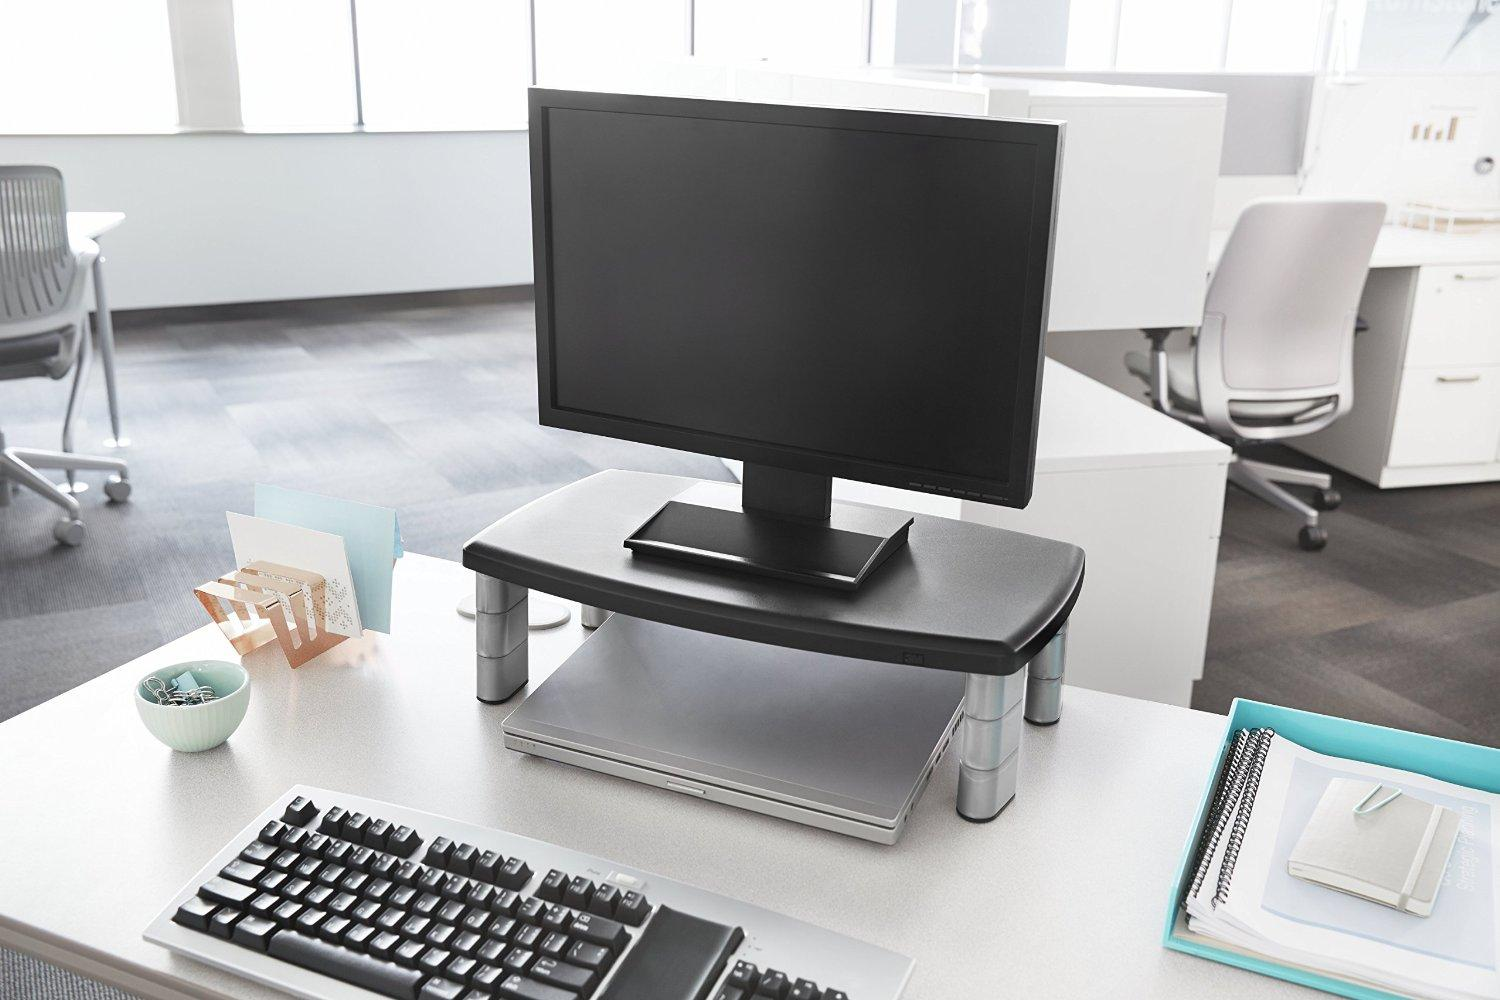 3M Extra Wide Adjustable Monitor Stand Height 1-Inch to 5 7/8-Inch, Holds 40 lbs